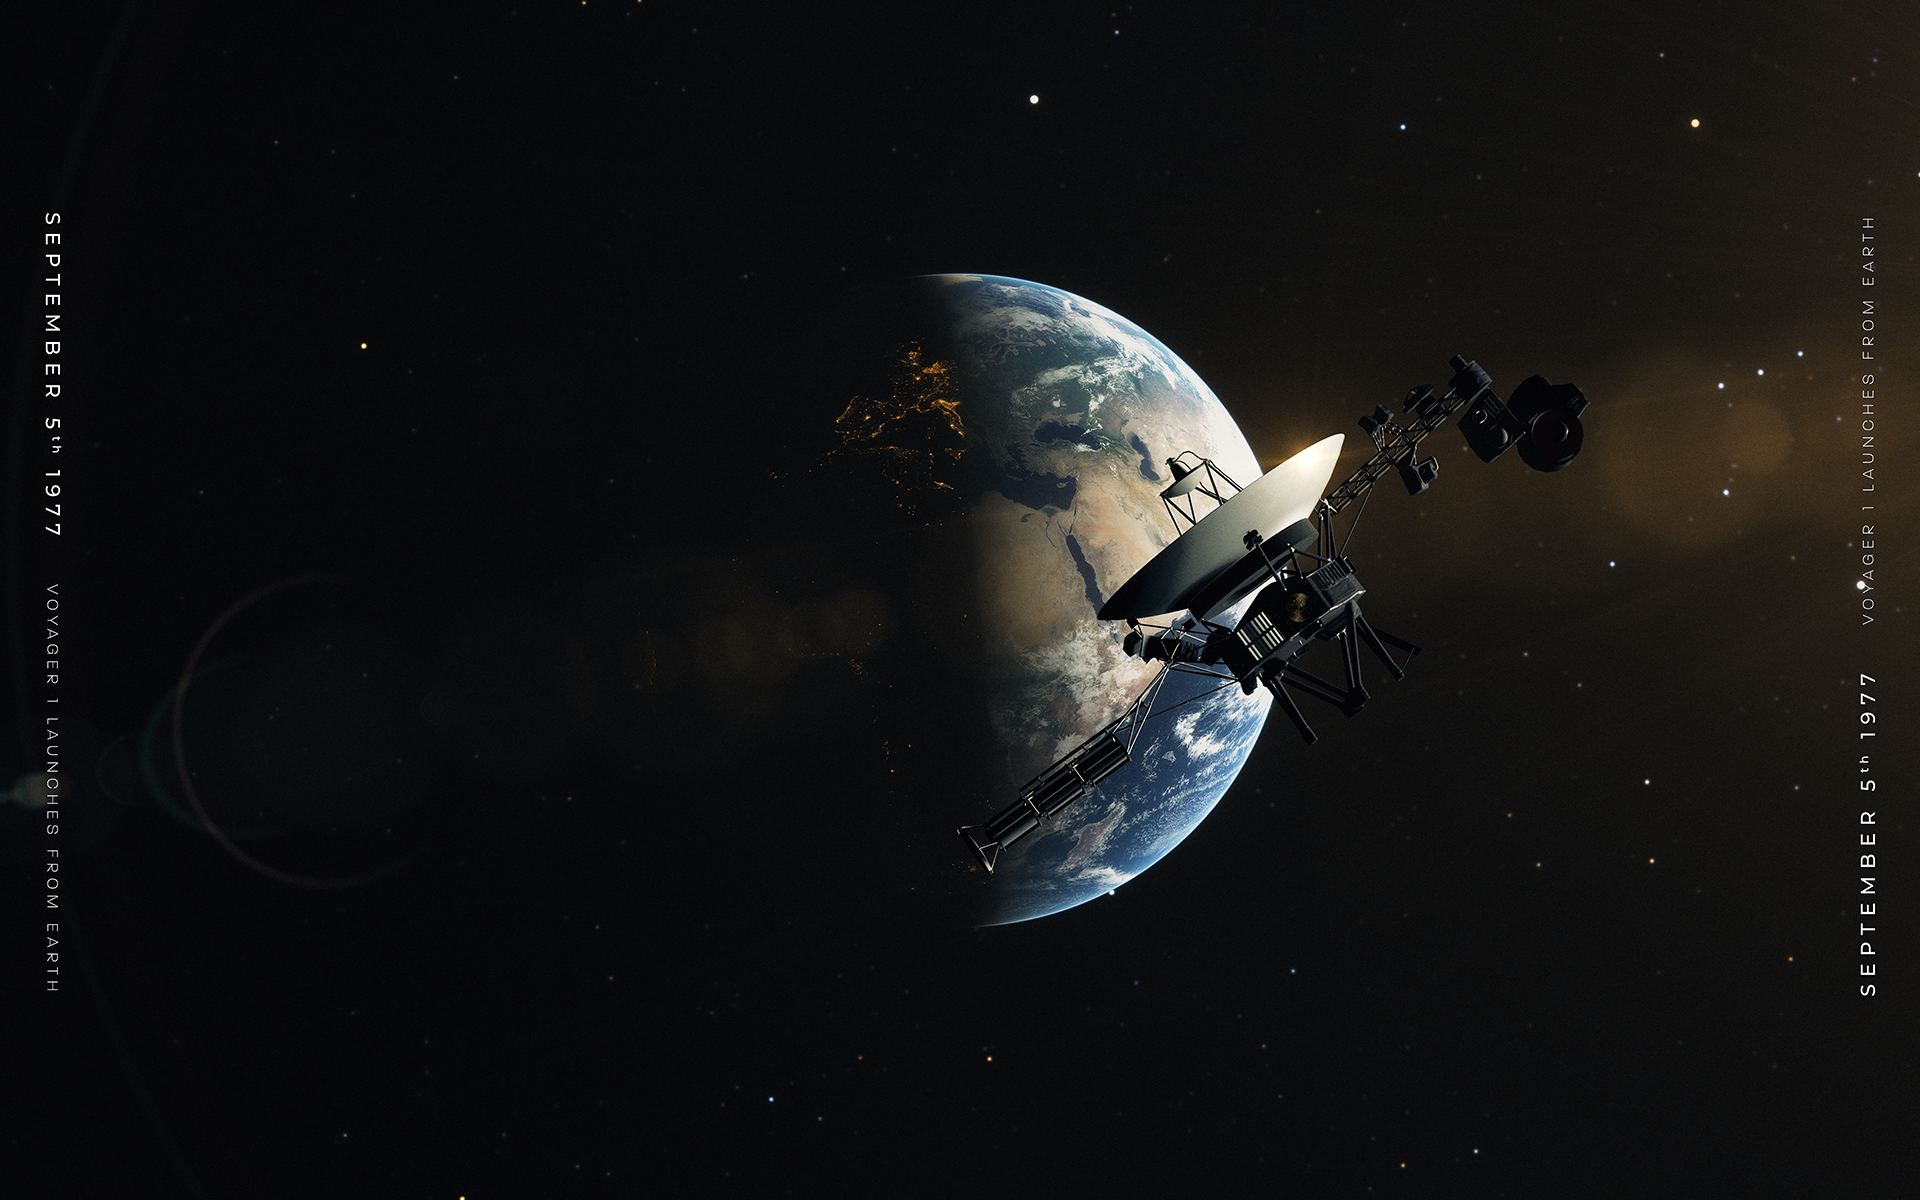 Voyager 1 - Launching from Earth (Canvas)